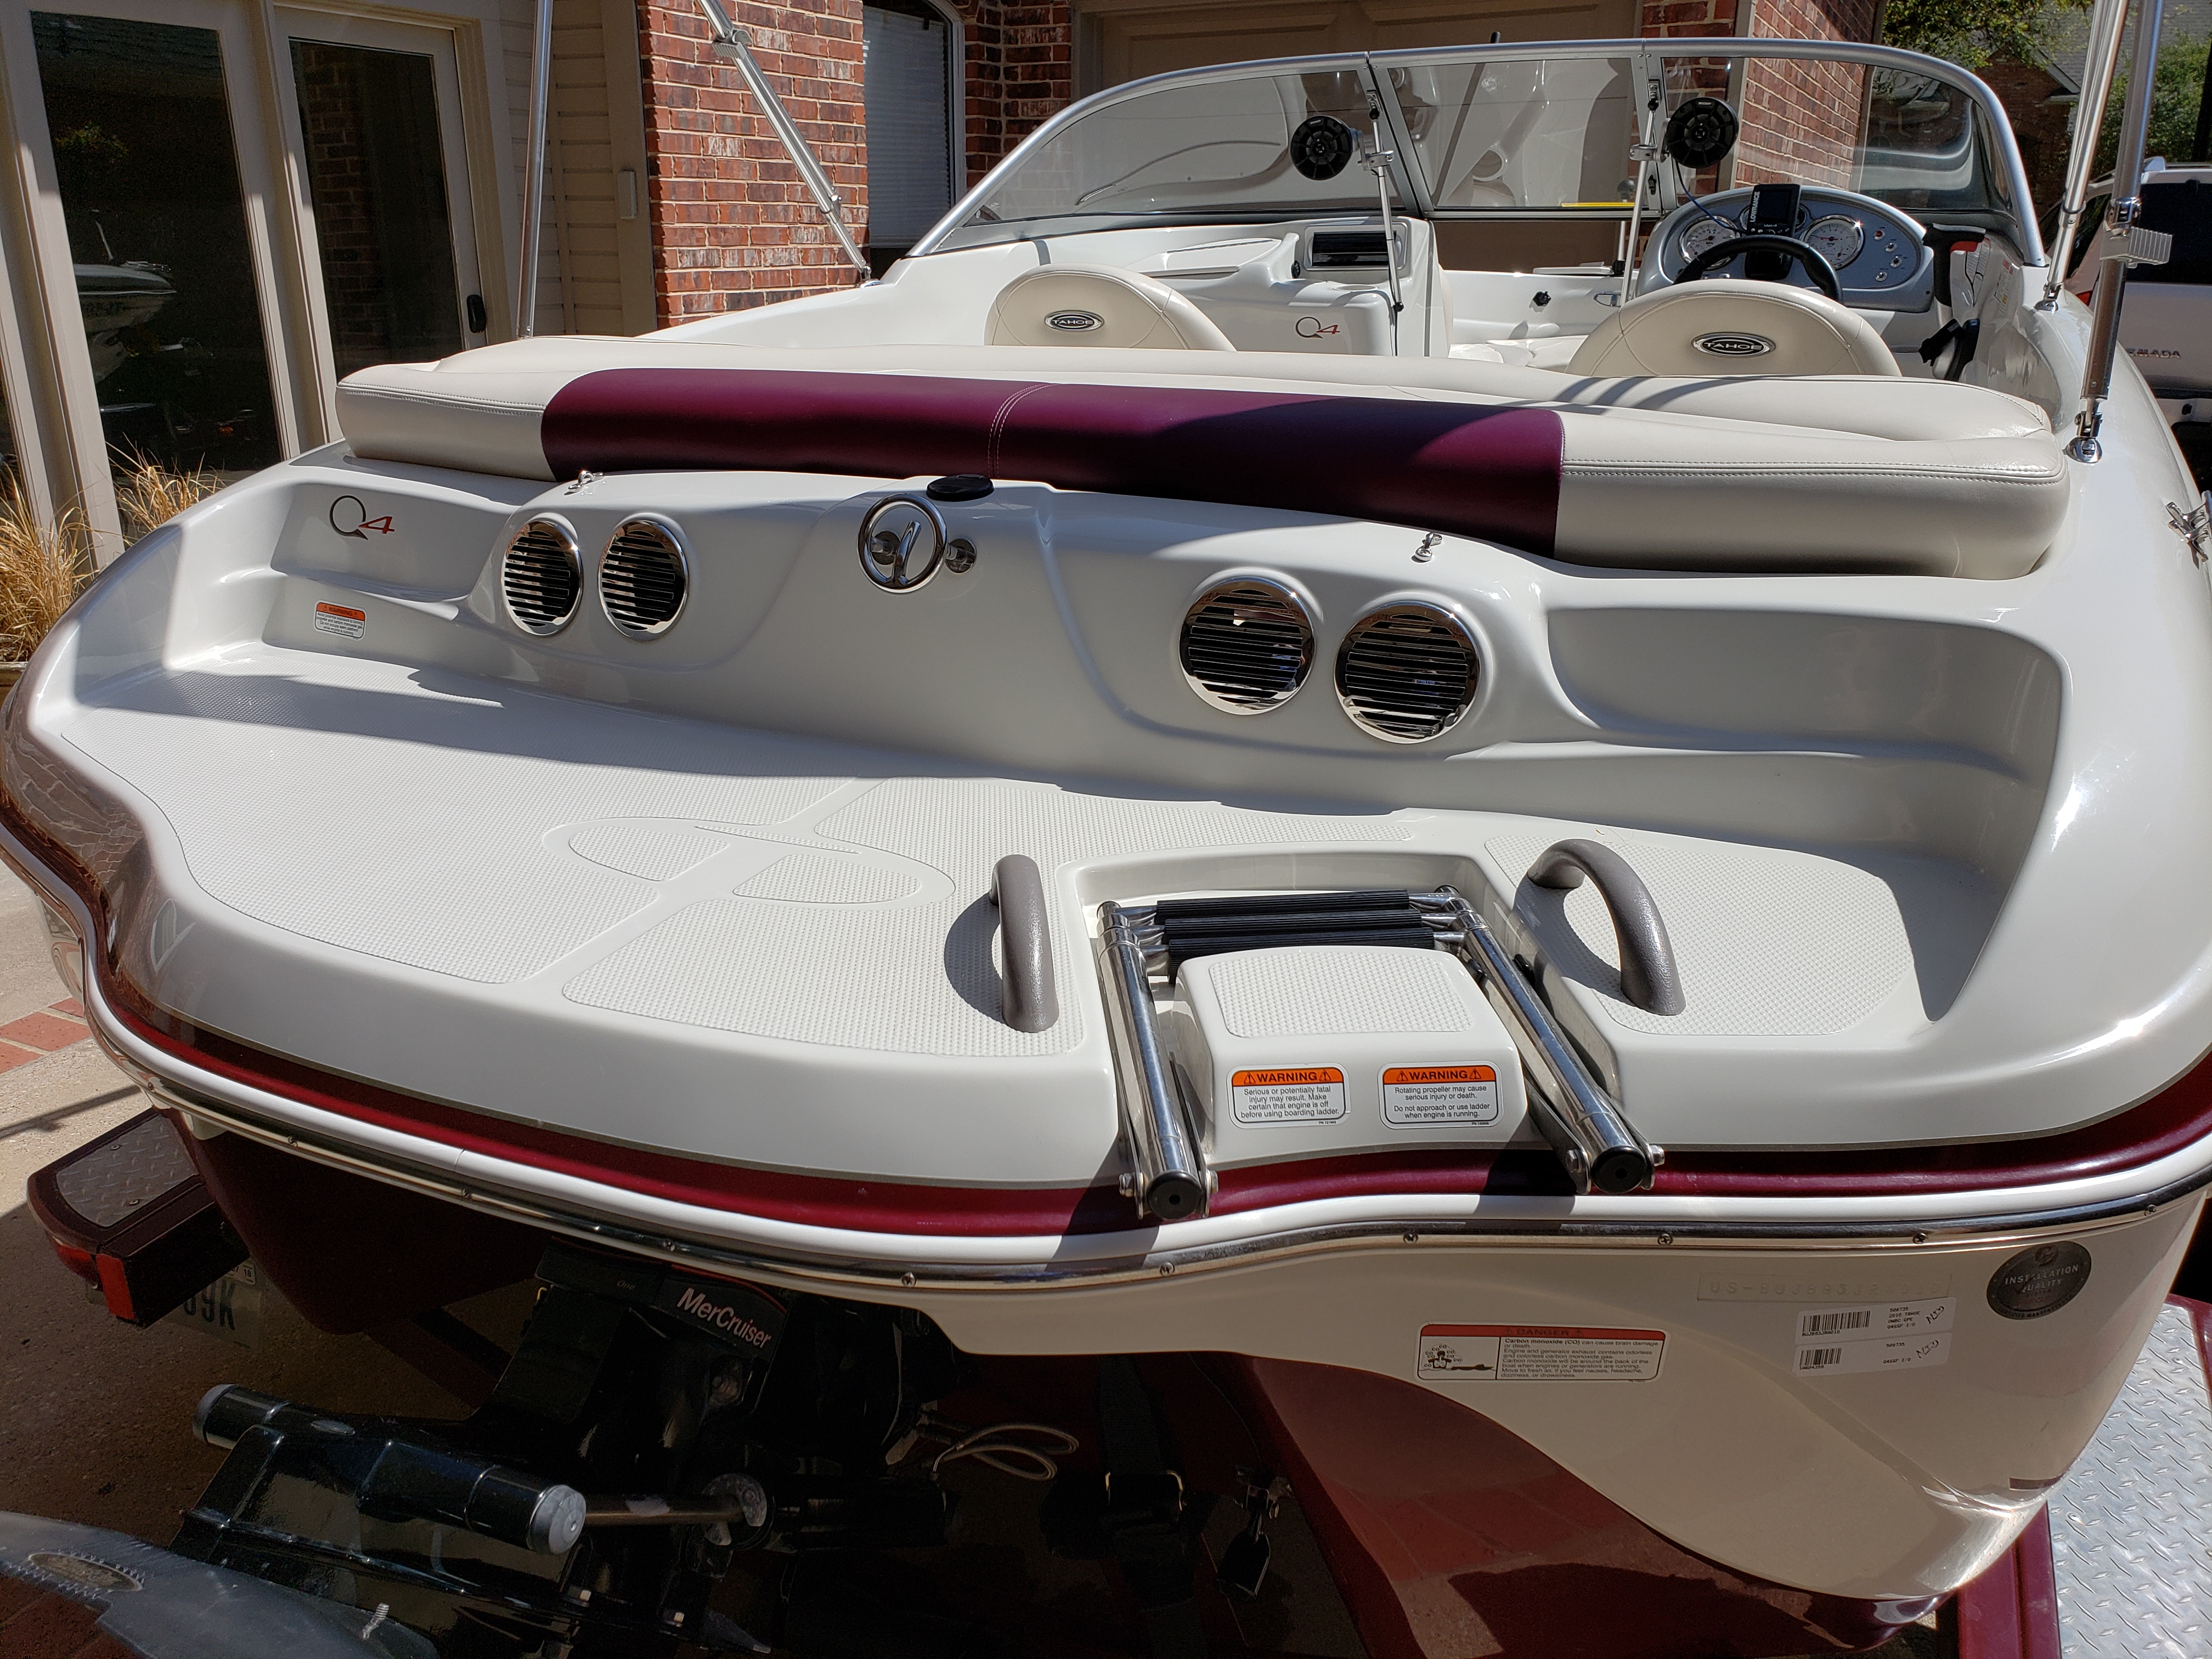 boat rentals Texas THE COLONY Texas  Tahoe Q4 SS 2010 18